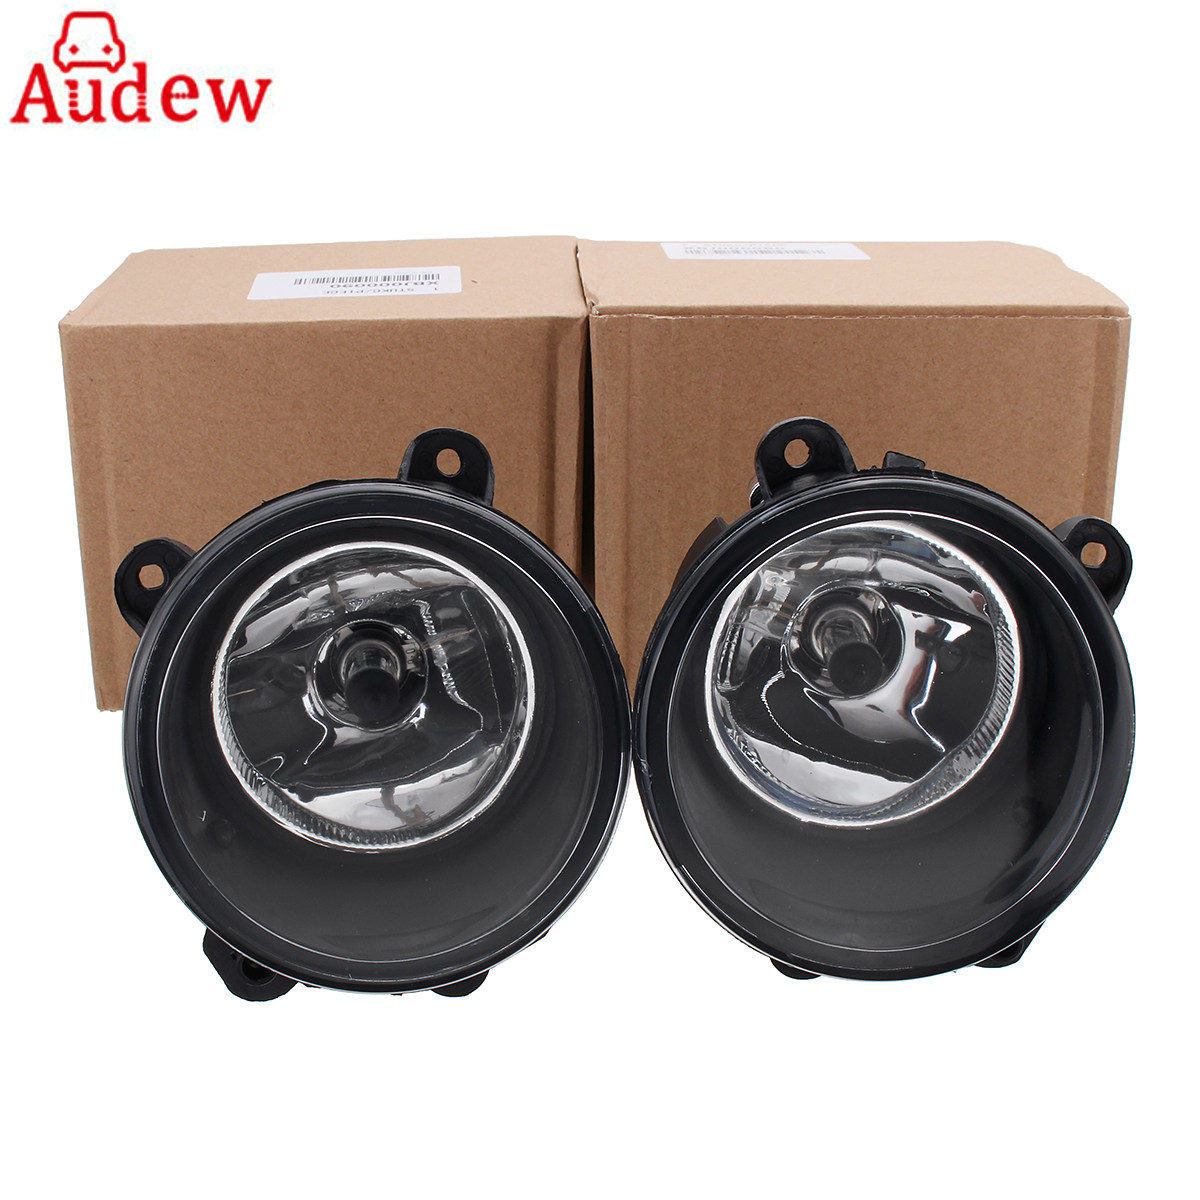 1Pair Clear Front Fog Lights Right&Left w/ H11 Bulbs For Land Rover Discovery 3 2003-2009 1pair right